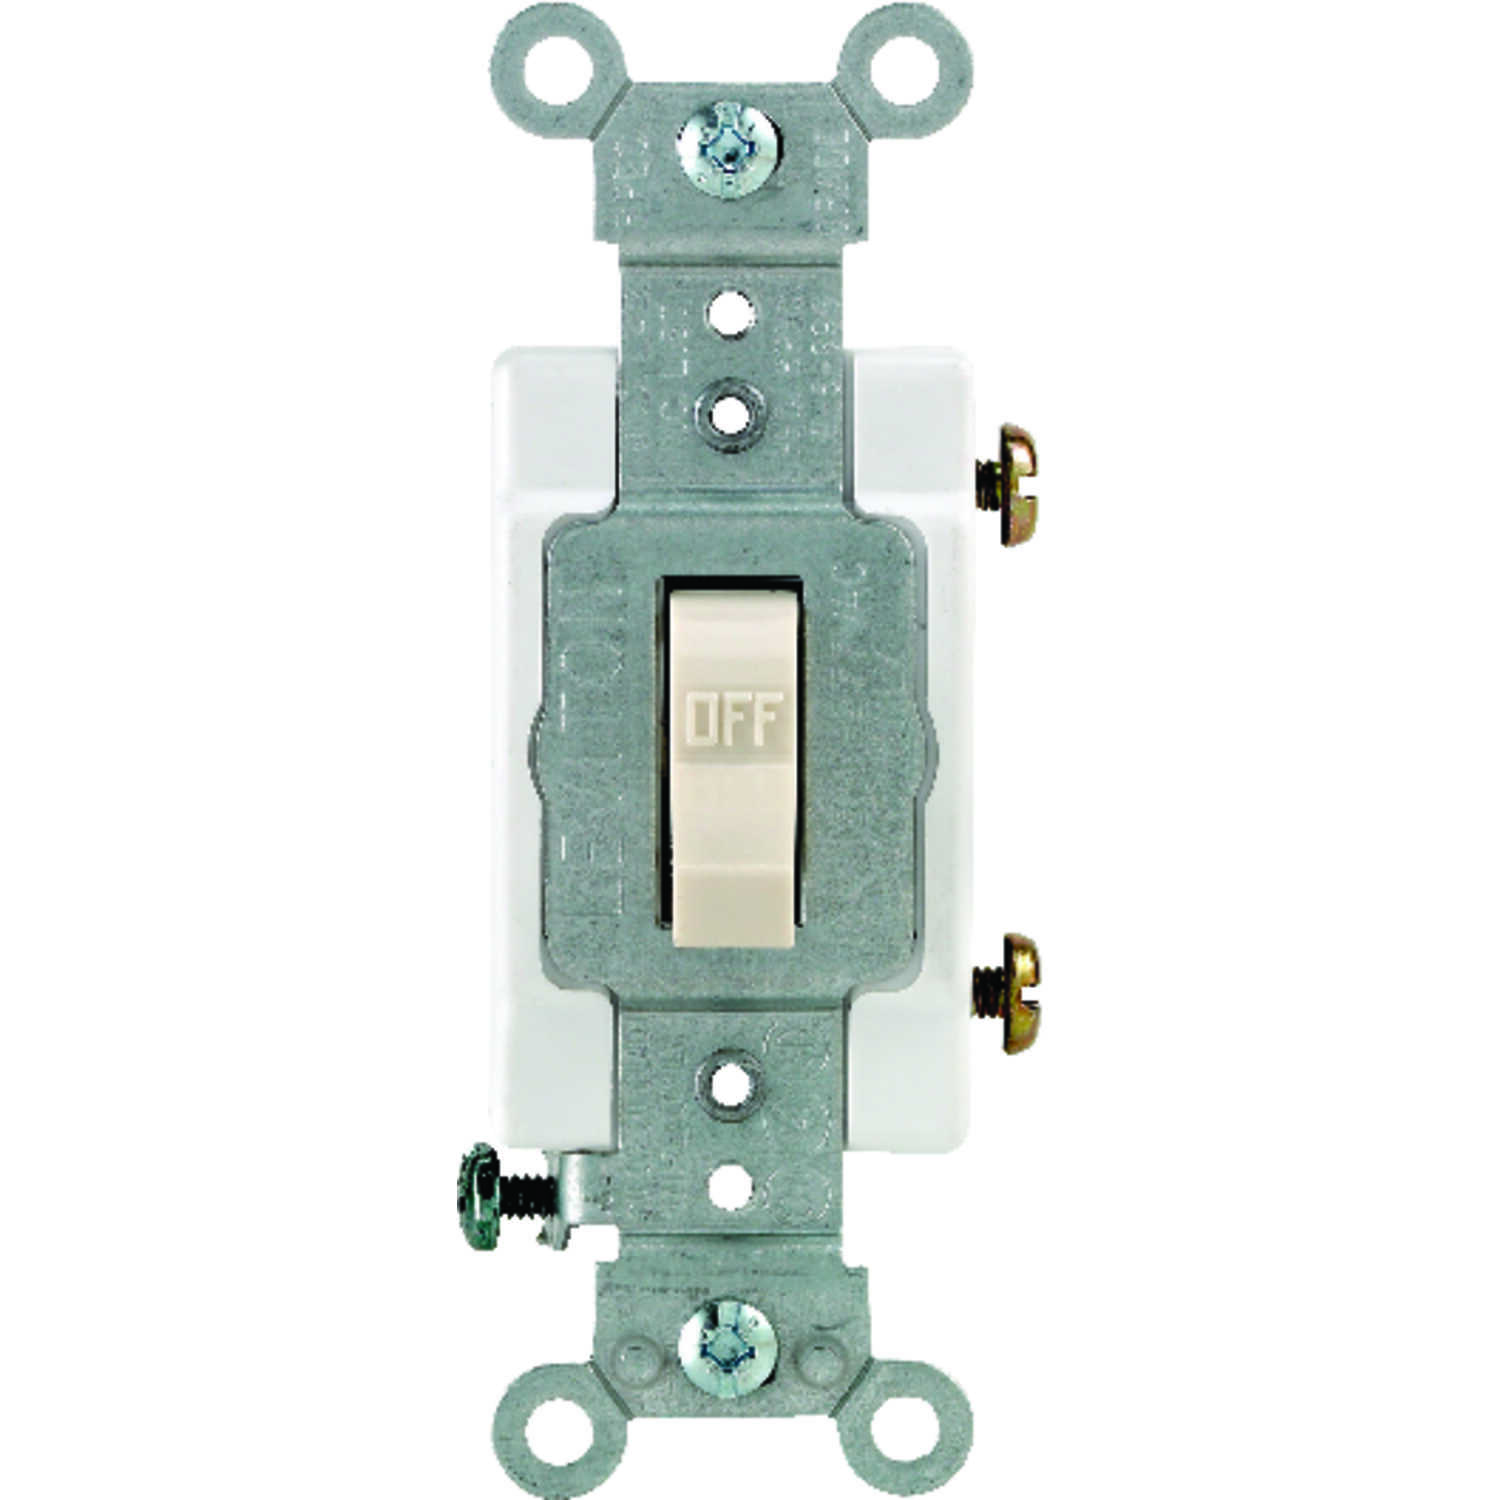 Leviton  Commercial  Single Pole  15 amps Switch  Light Almond  1 pk Toggle  15 amps